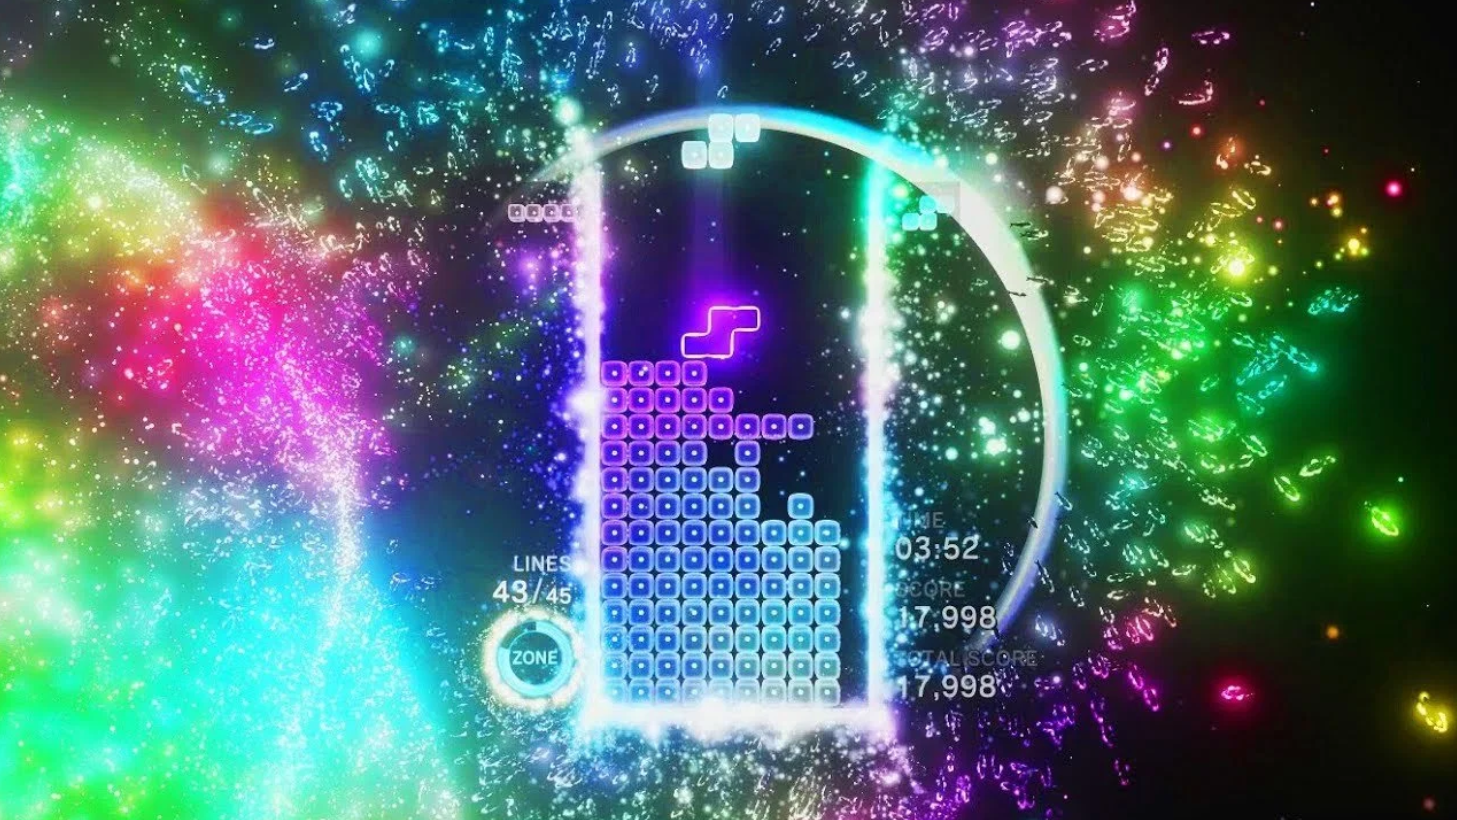 One of the colorful scenes in Tetris Effect: Connected.